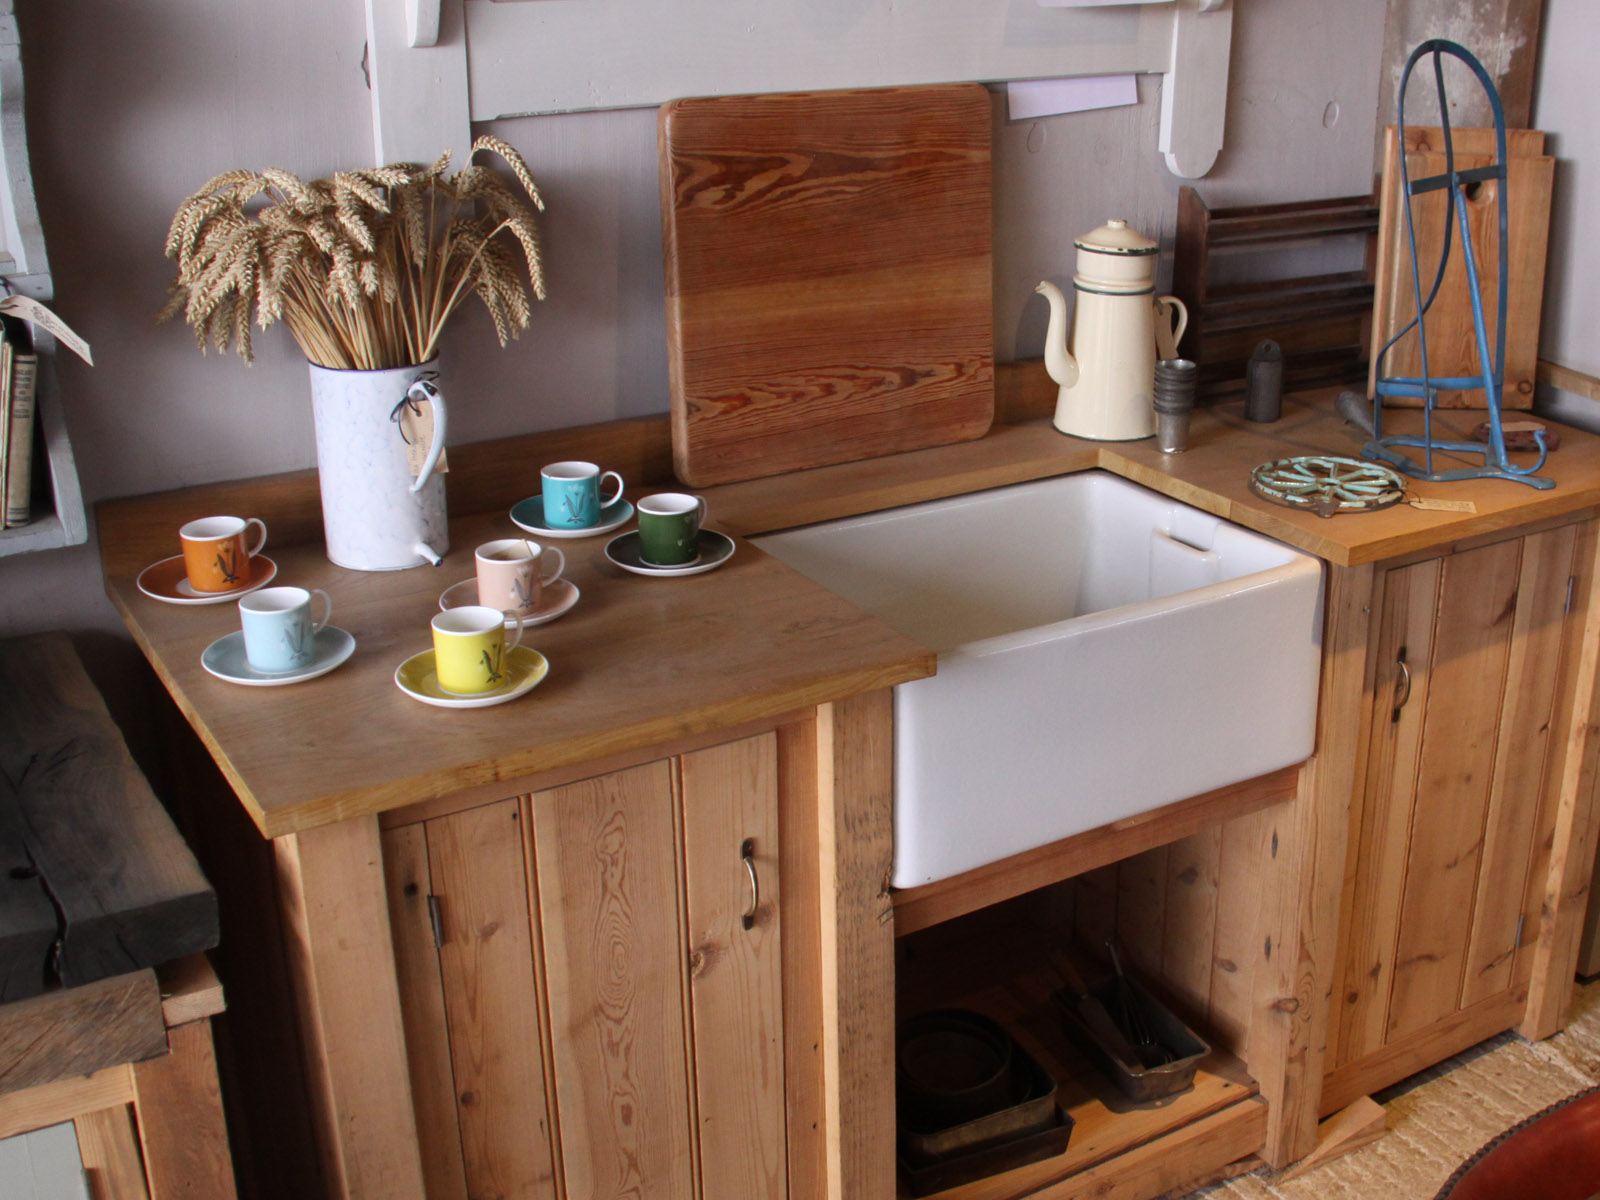 Bespoke solid wood kitchen units from reclaimed timber - Reclaimed wood kitchens ...